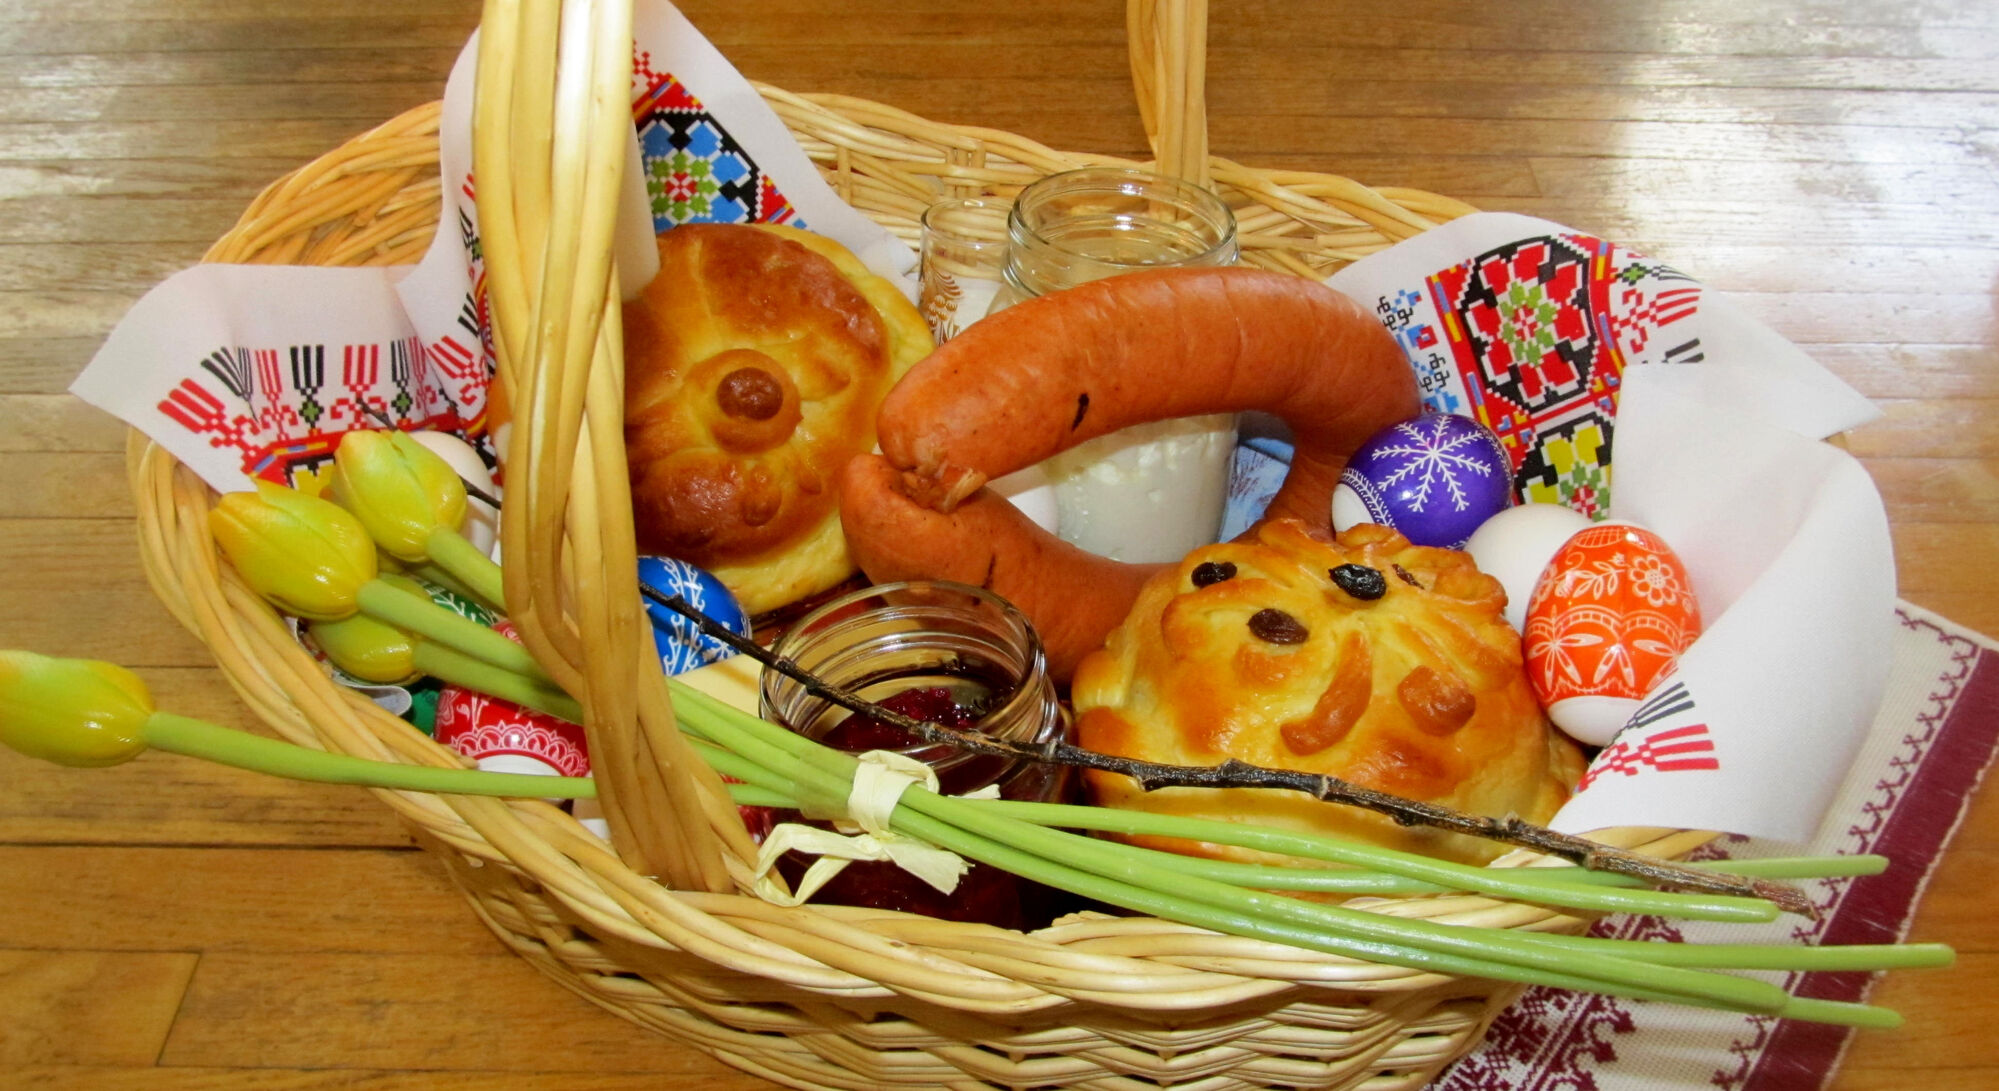 Explaining orthodox easter traditions winnipeg free press a traditional ukrainian easter basket is filled with items symbolizing christ spring and renewal negle Images